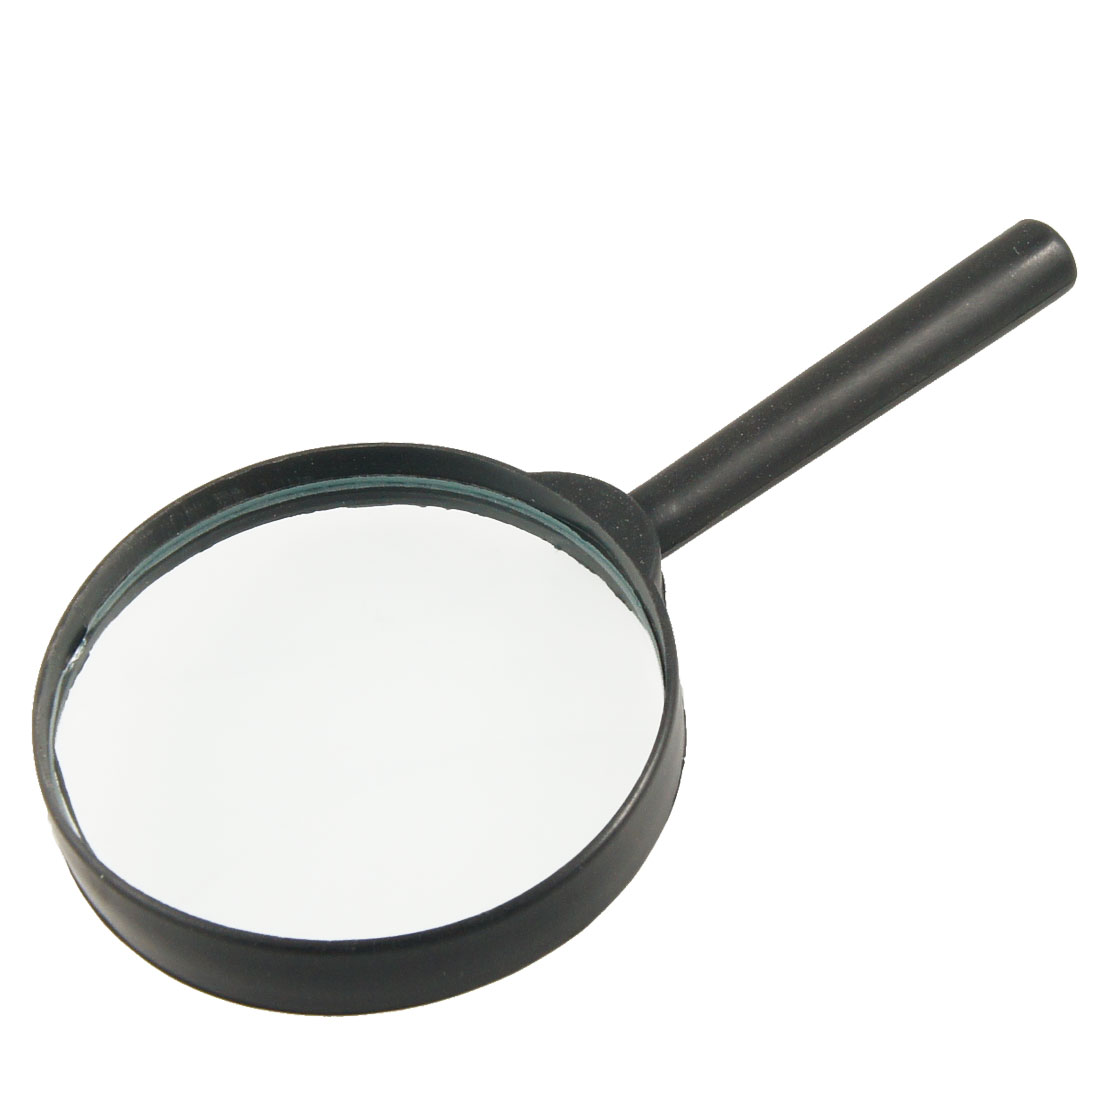 Black Plastic Handle 75mm Diameter Lens 3X Magnifier Magnifying